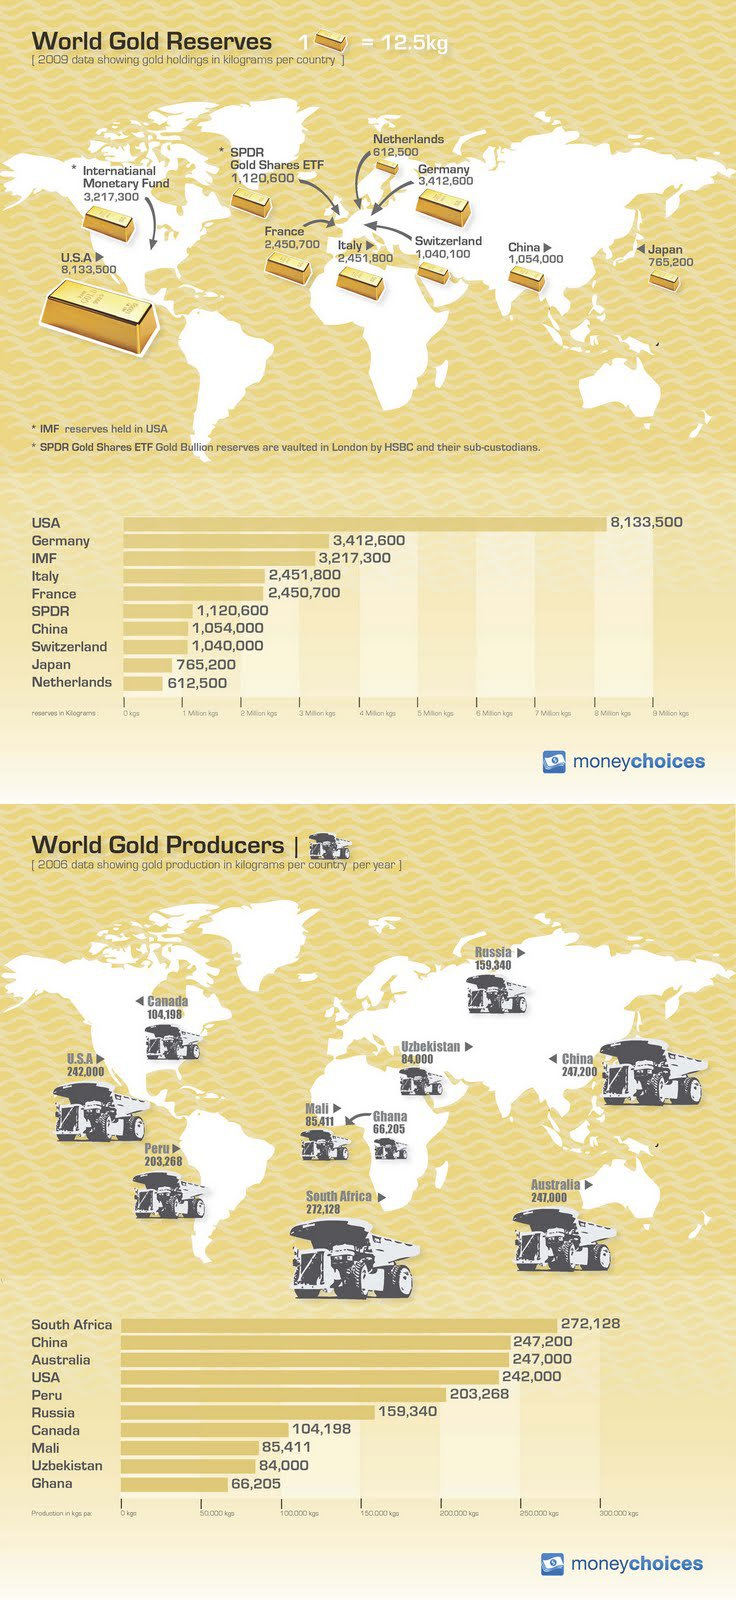 World gold reserves in kilograms per country per year [2006]